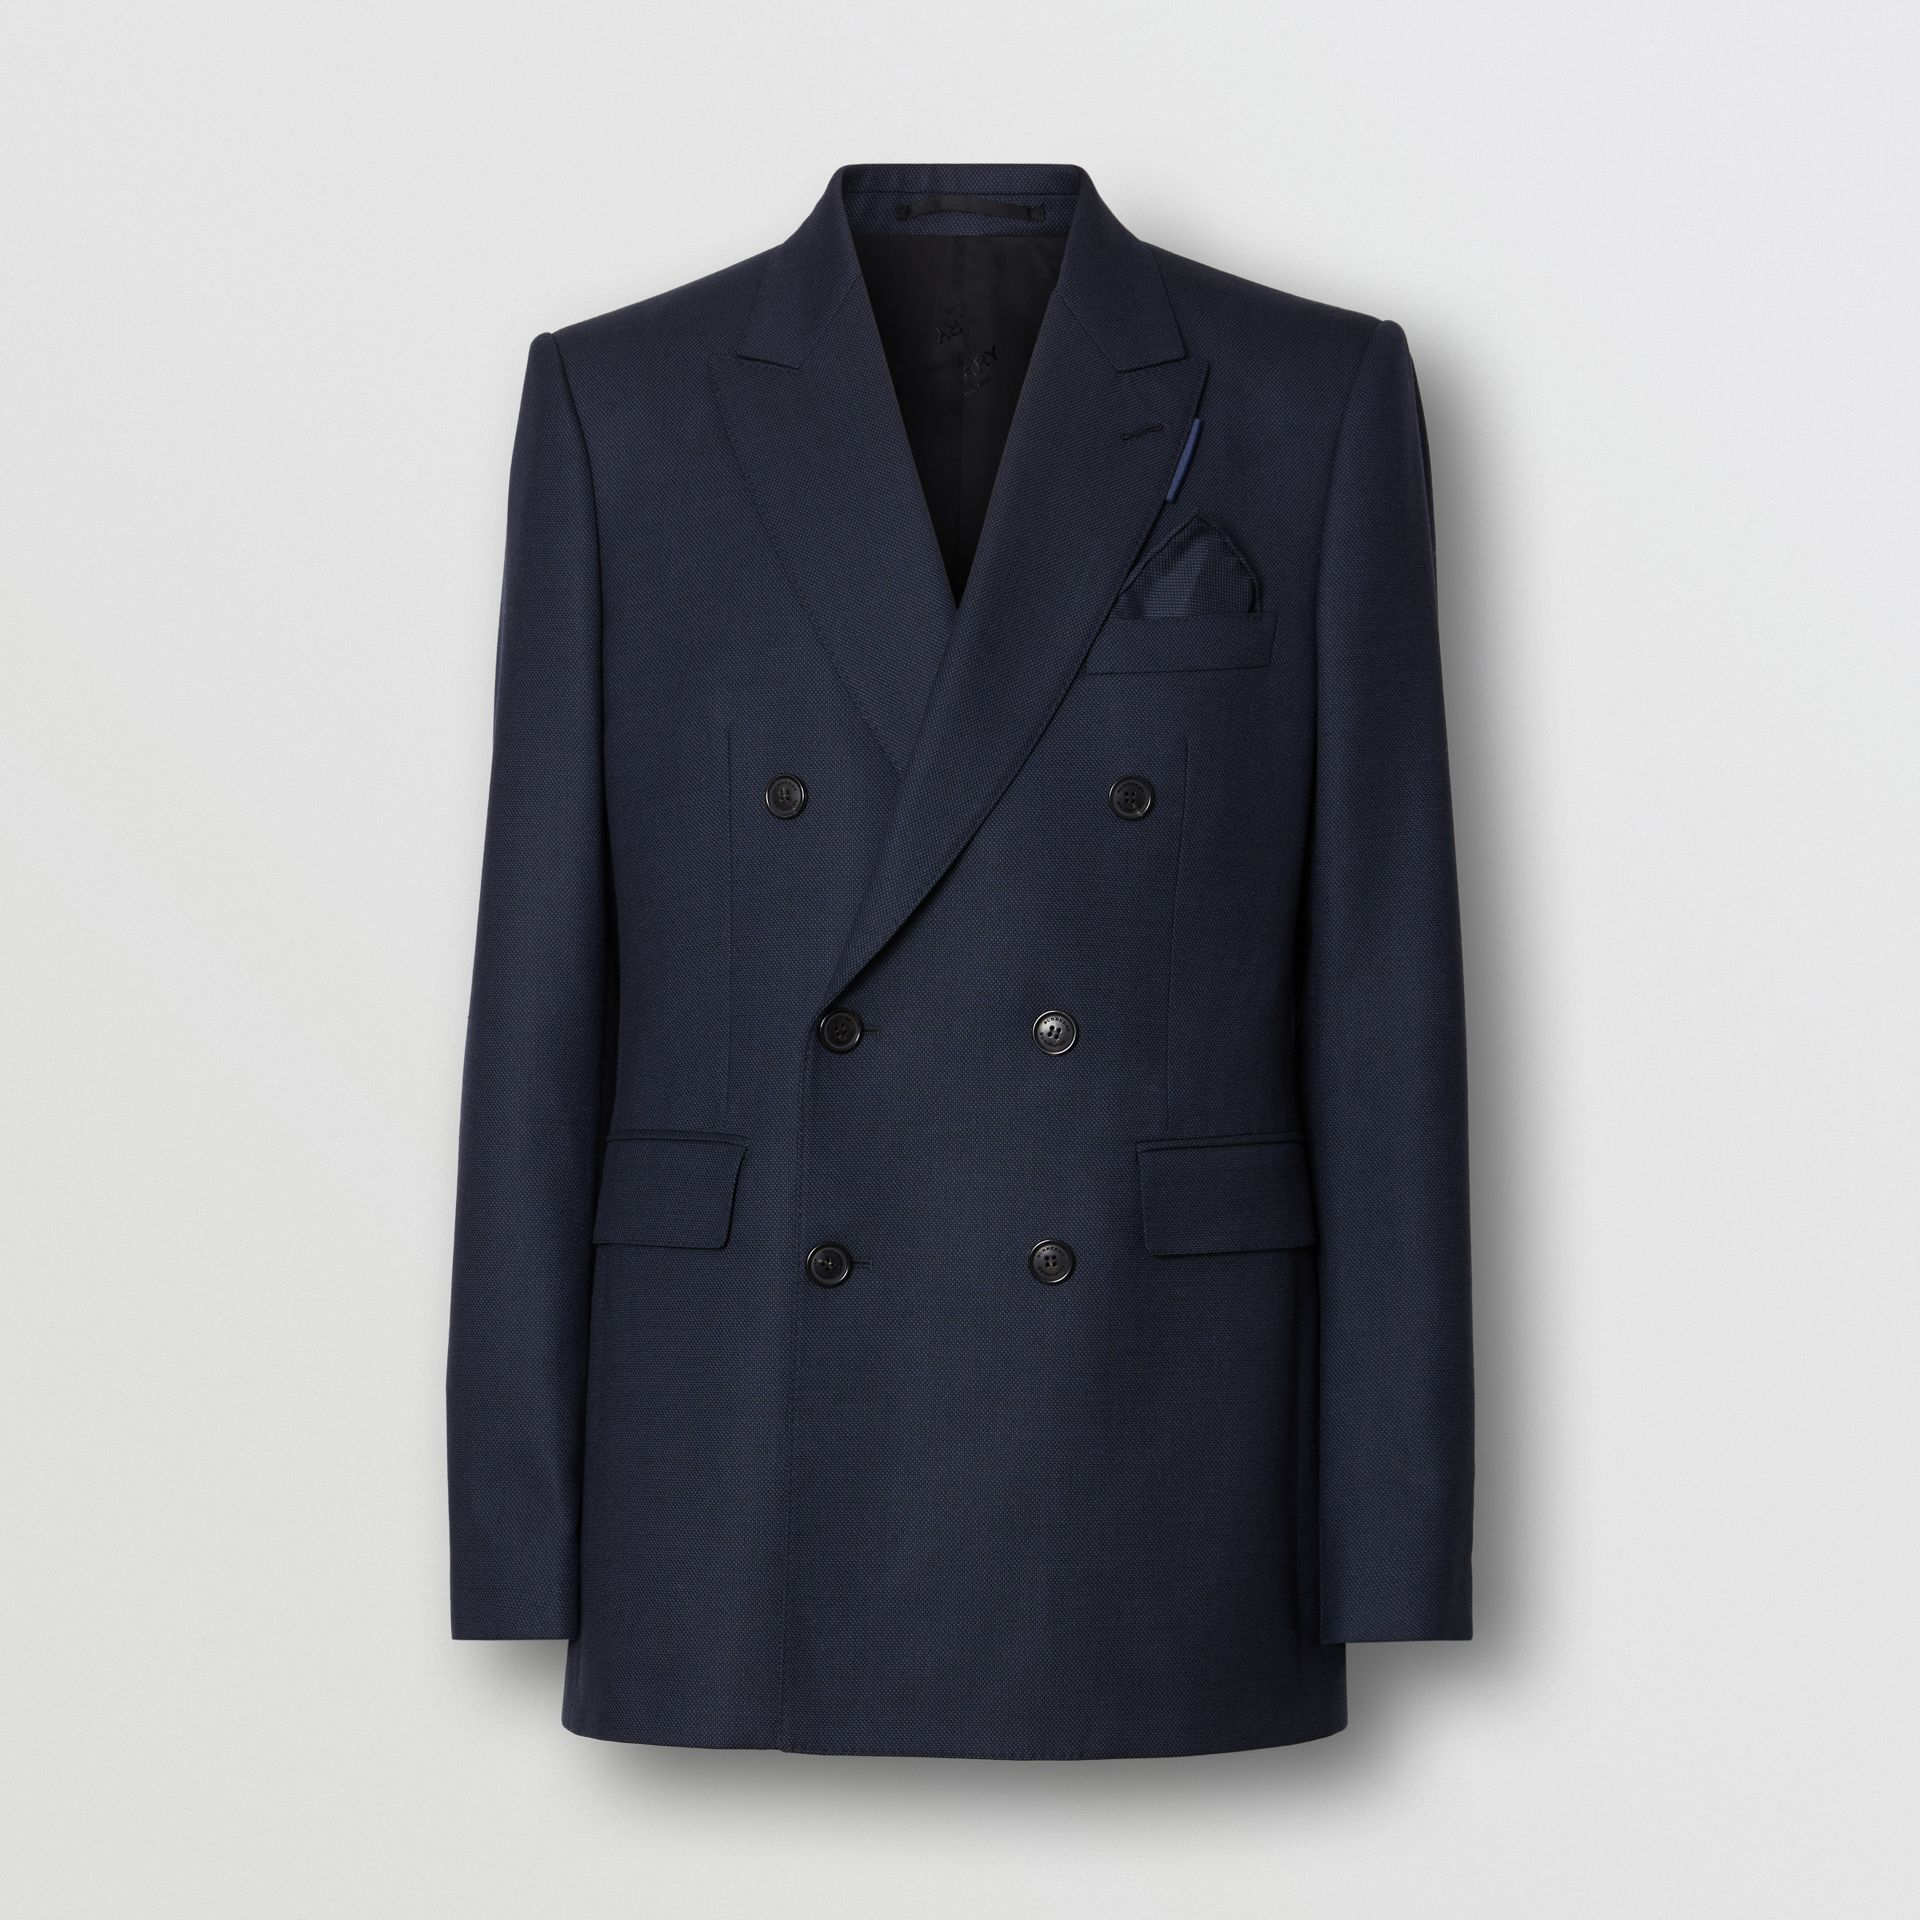 English Fit Birdseye Wool Cashmere Suit in Navy Blue | Burberry Hong Kong S.A.R - gallery image 3